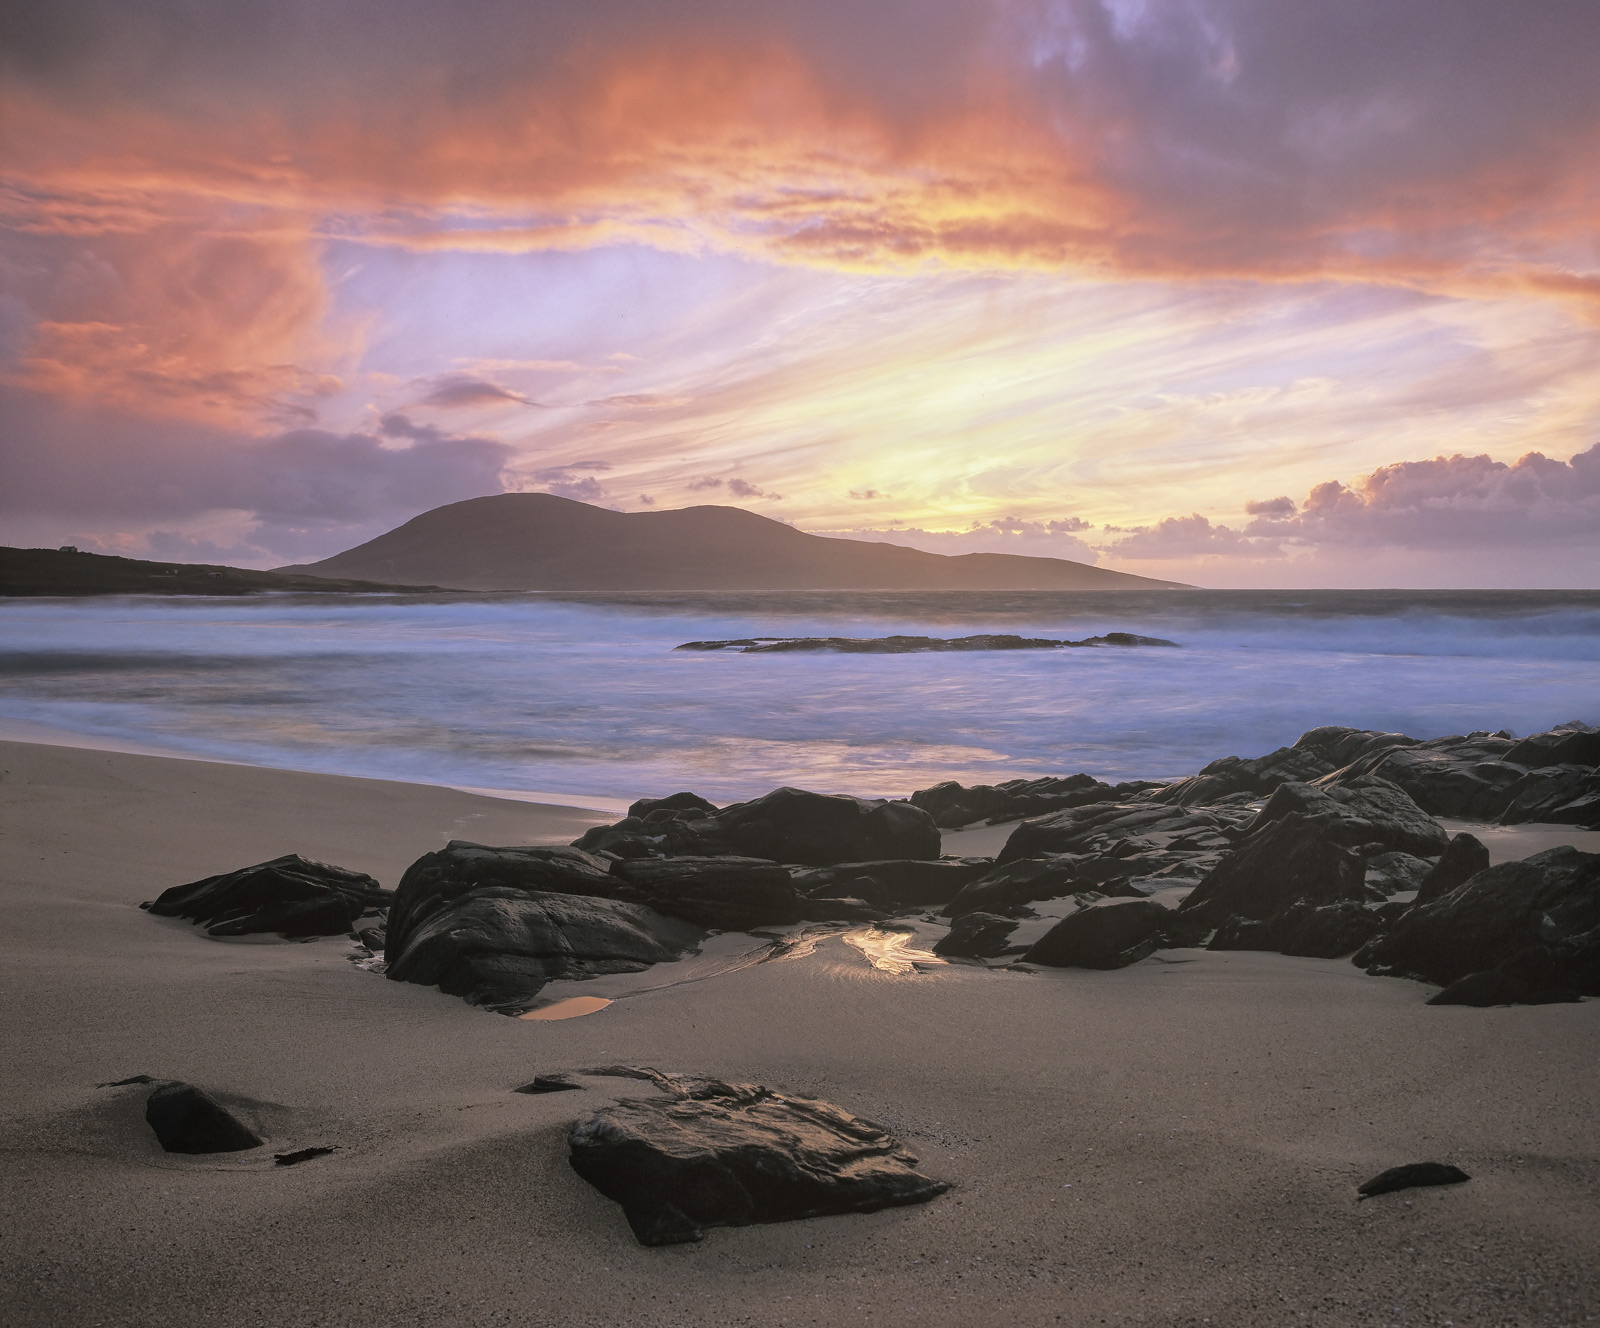 Traigh Mhor Rouge, sunset, beach, orange, sand, granular, unblemished, turquoise, gullys, mounds, Celaphabal, seas, hill, photo